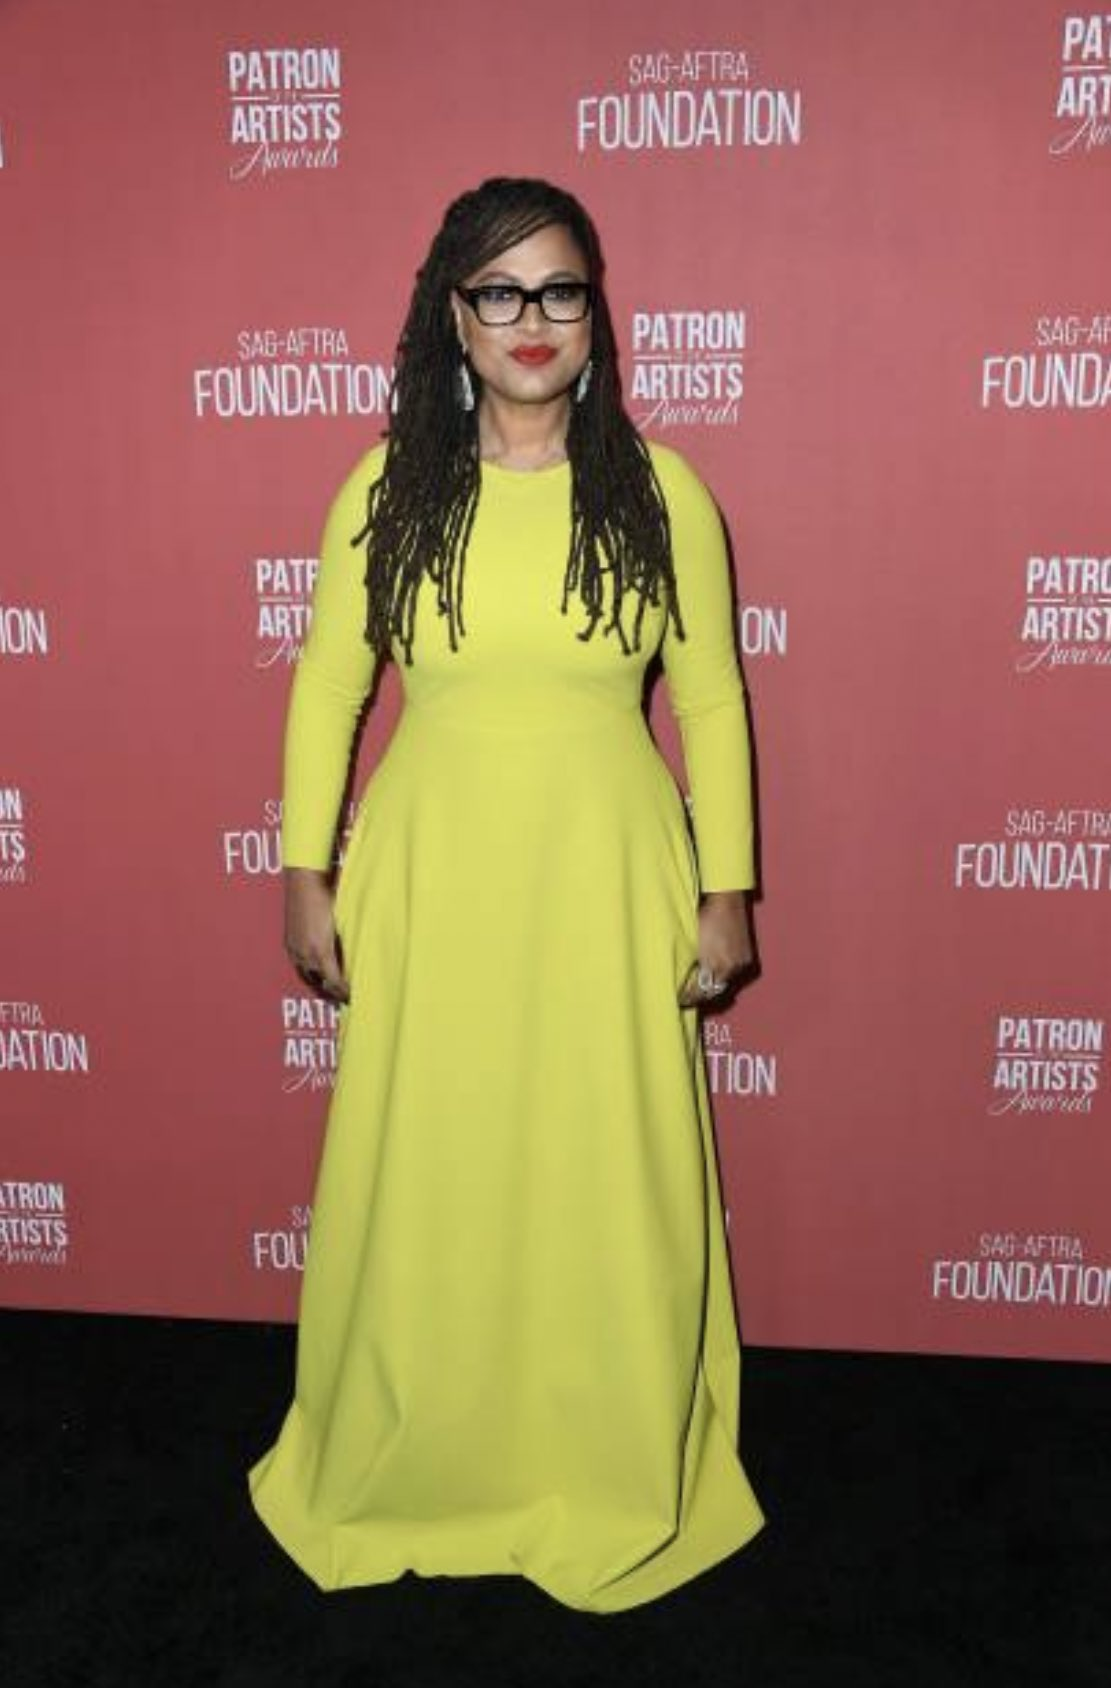 ava-duvernay-in-greta-constantine-sag-aftra-foundations-4th-annual-patron-of-the-artists-awards